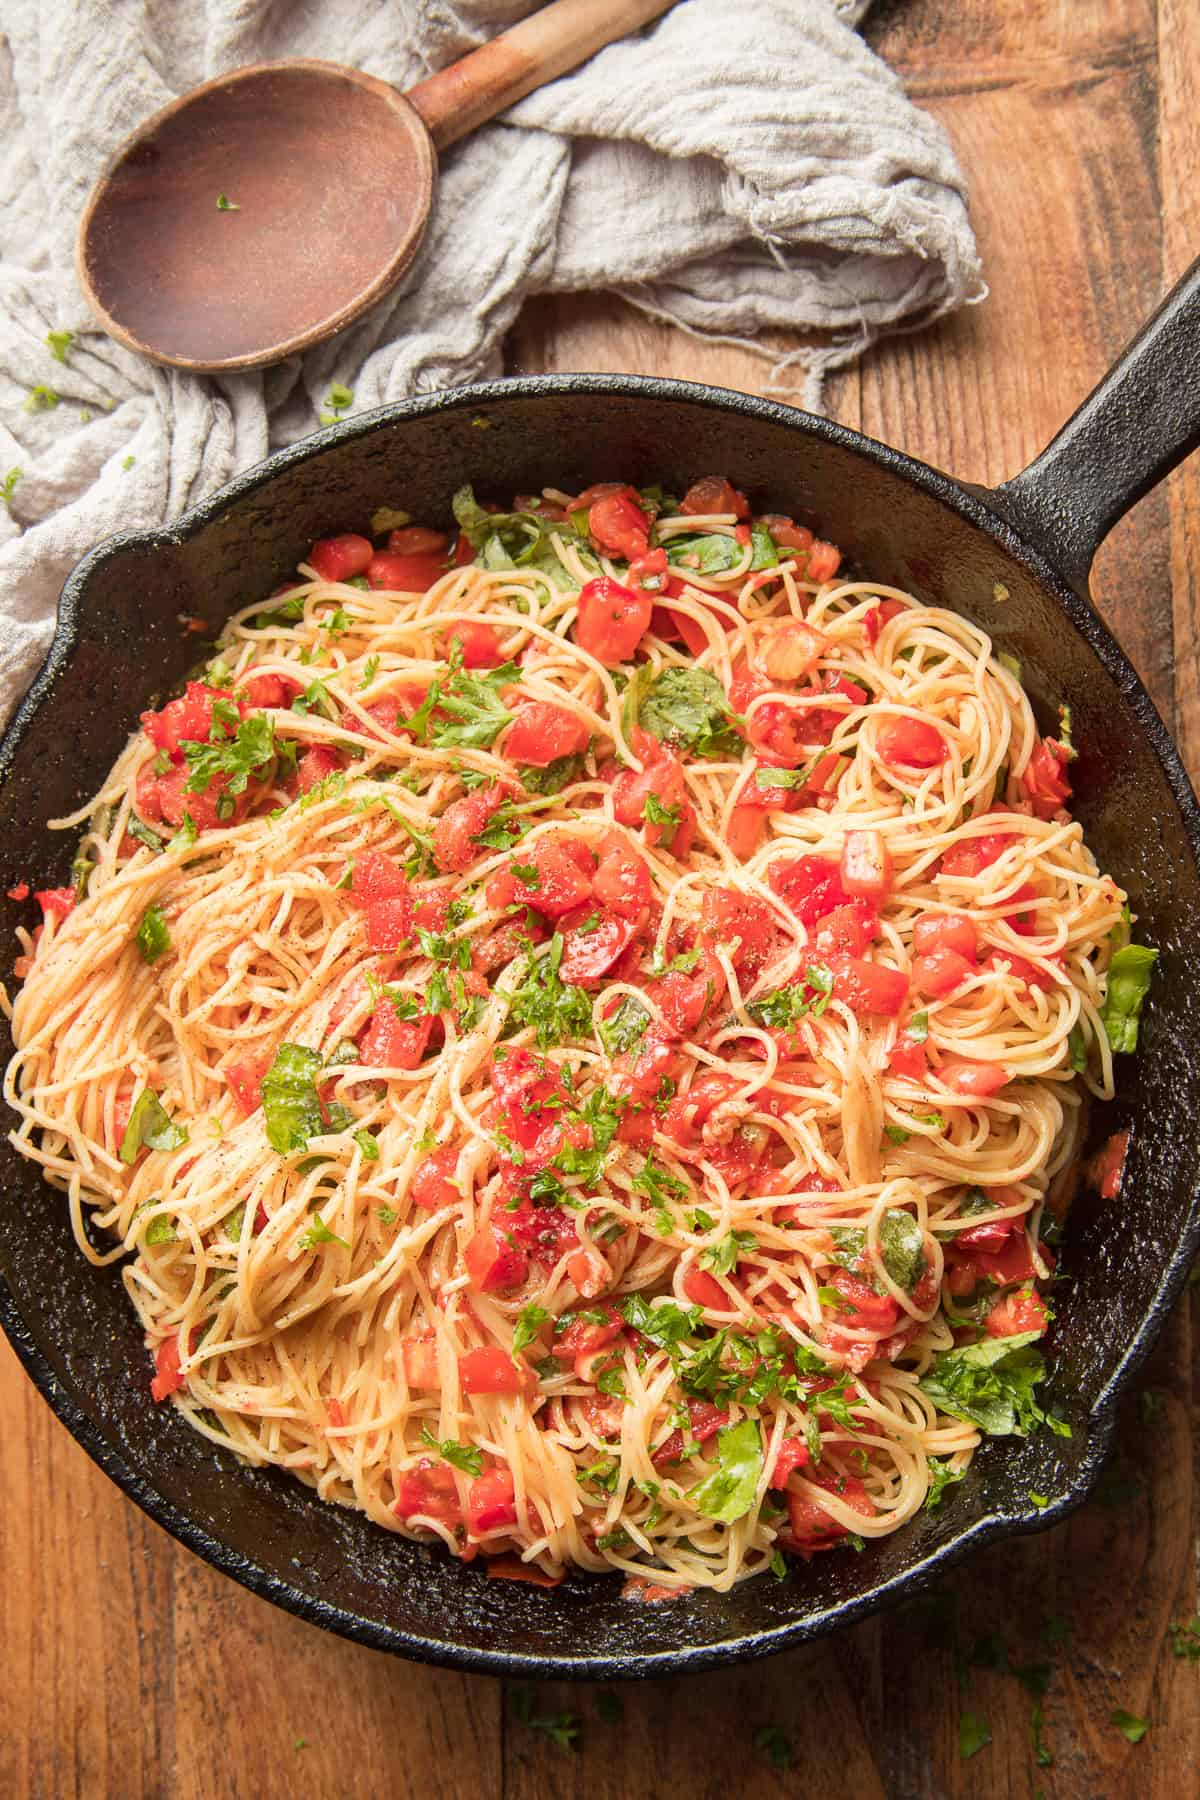 Skillet of Tomato Basil Pasta with Wooden Spoon